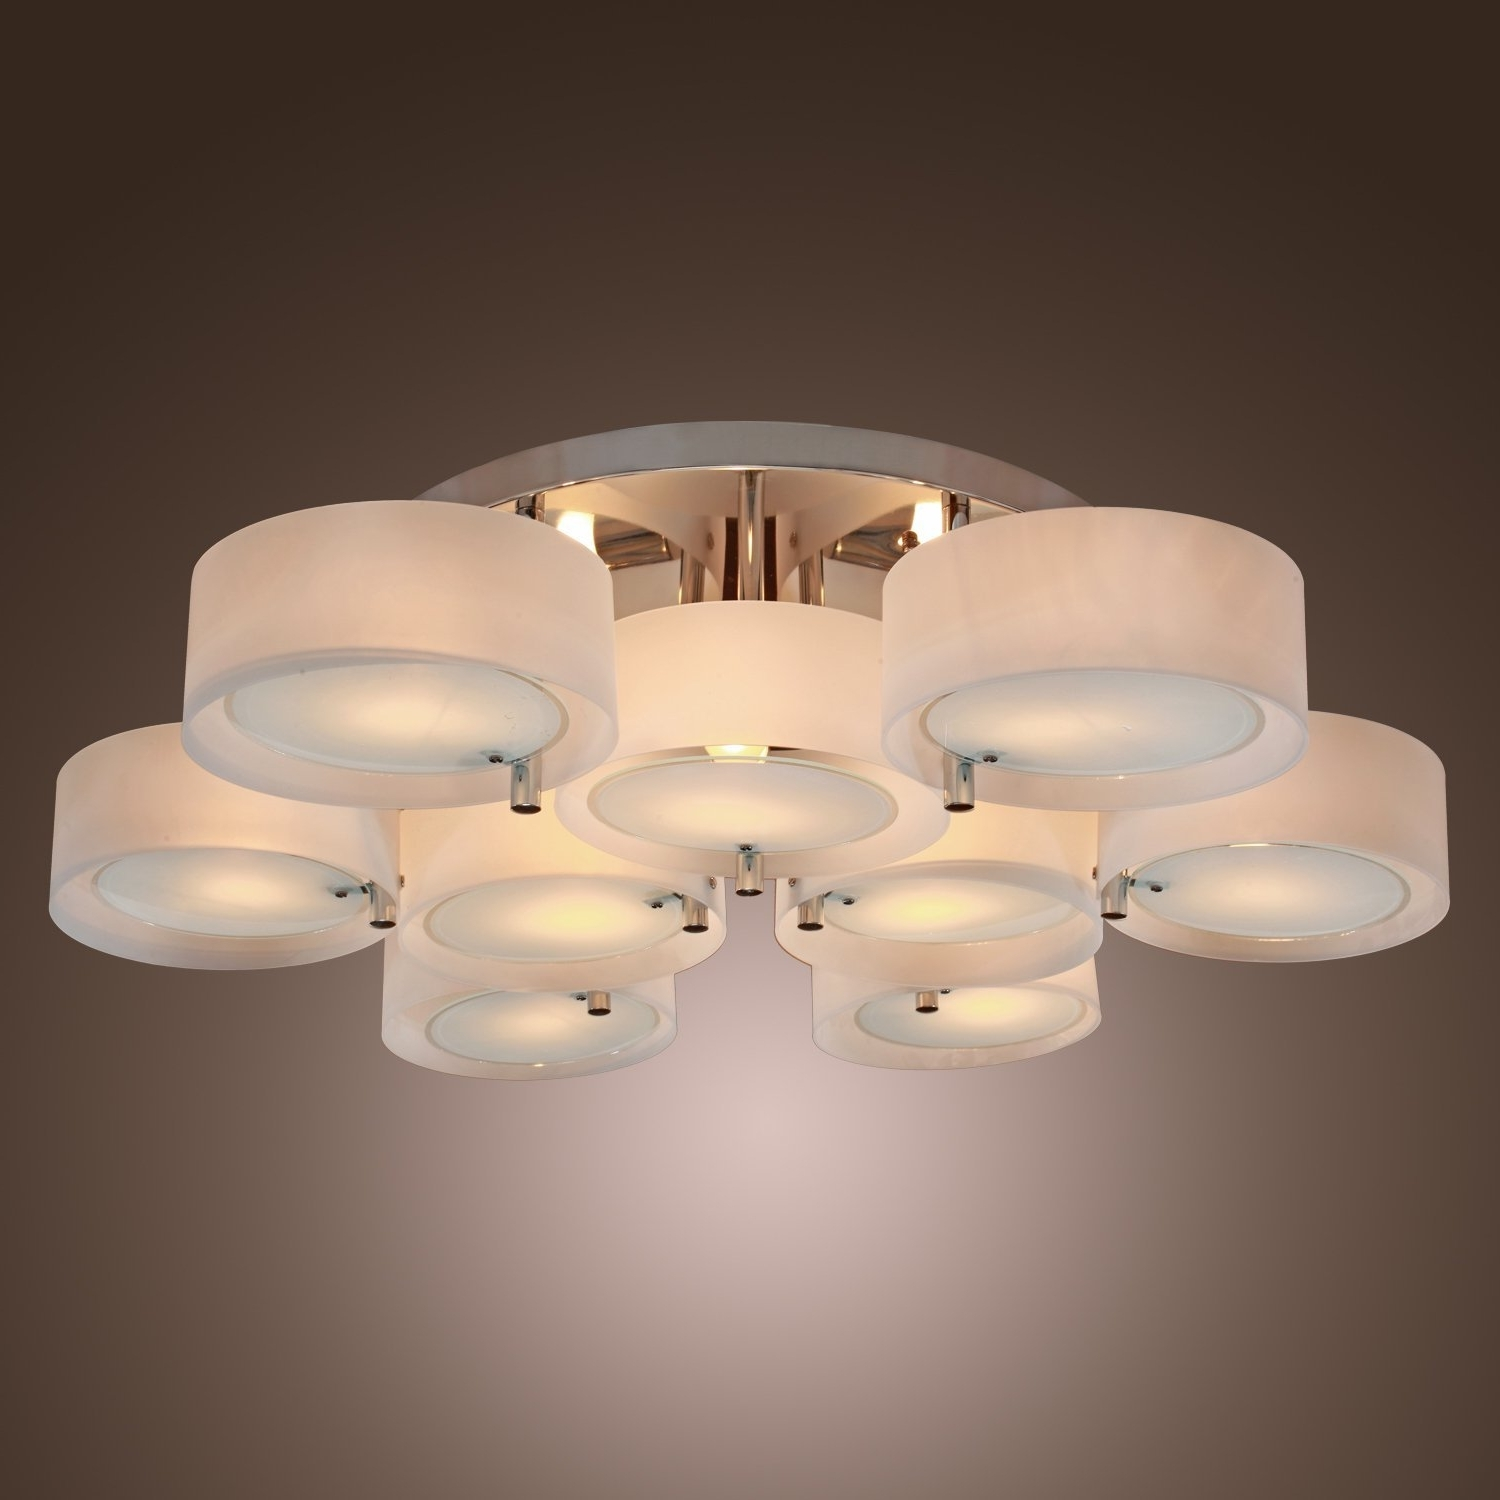 Famous Lightinthebox Acrylic Chandelier With 9 Lights, Flush Mount, Modern For Wall Mounted Chandelier Lighting (View 10 of 15)